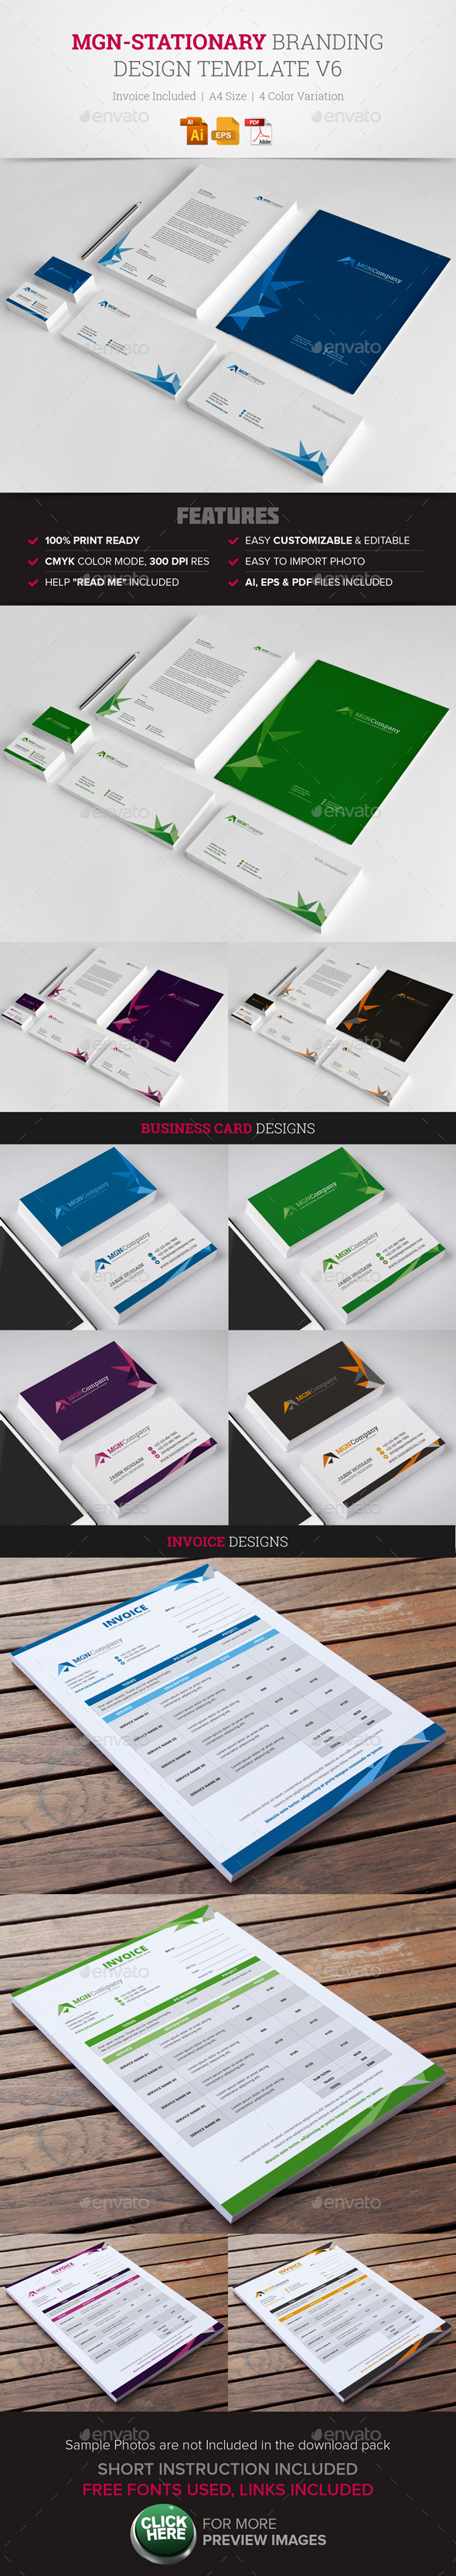 GraphicRiver MGN-Stationary & Invoice Design v6 11808412